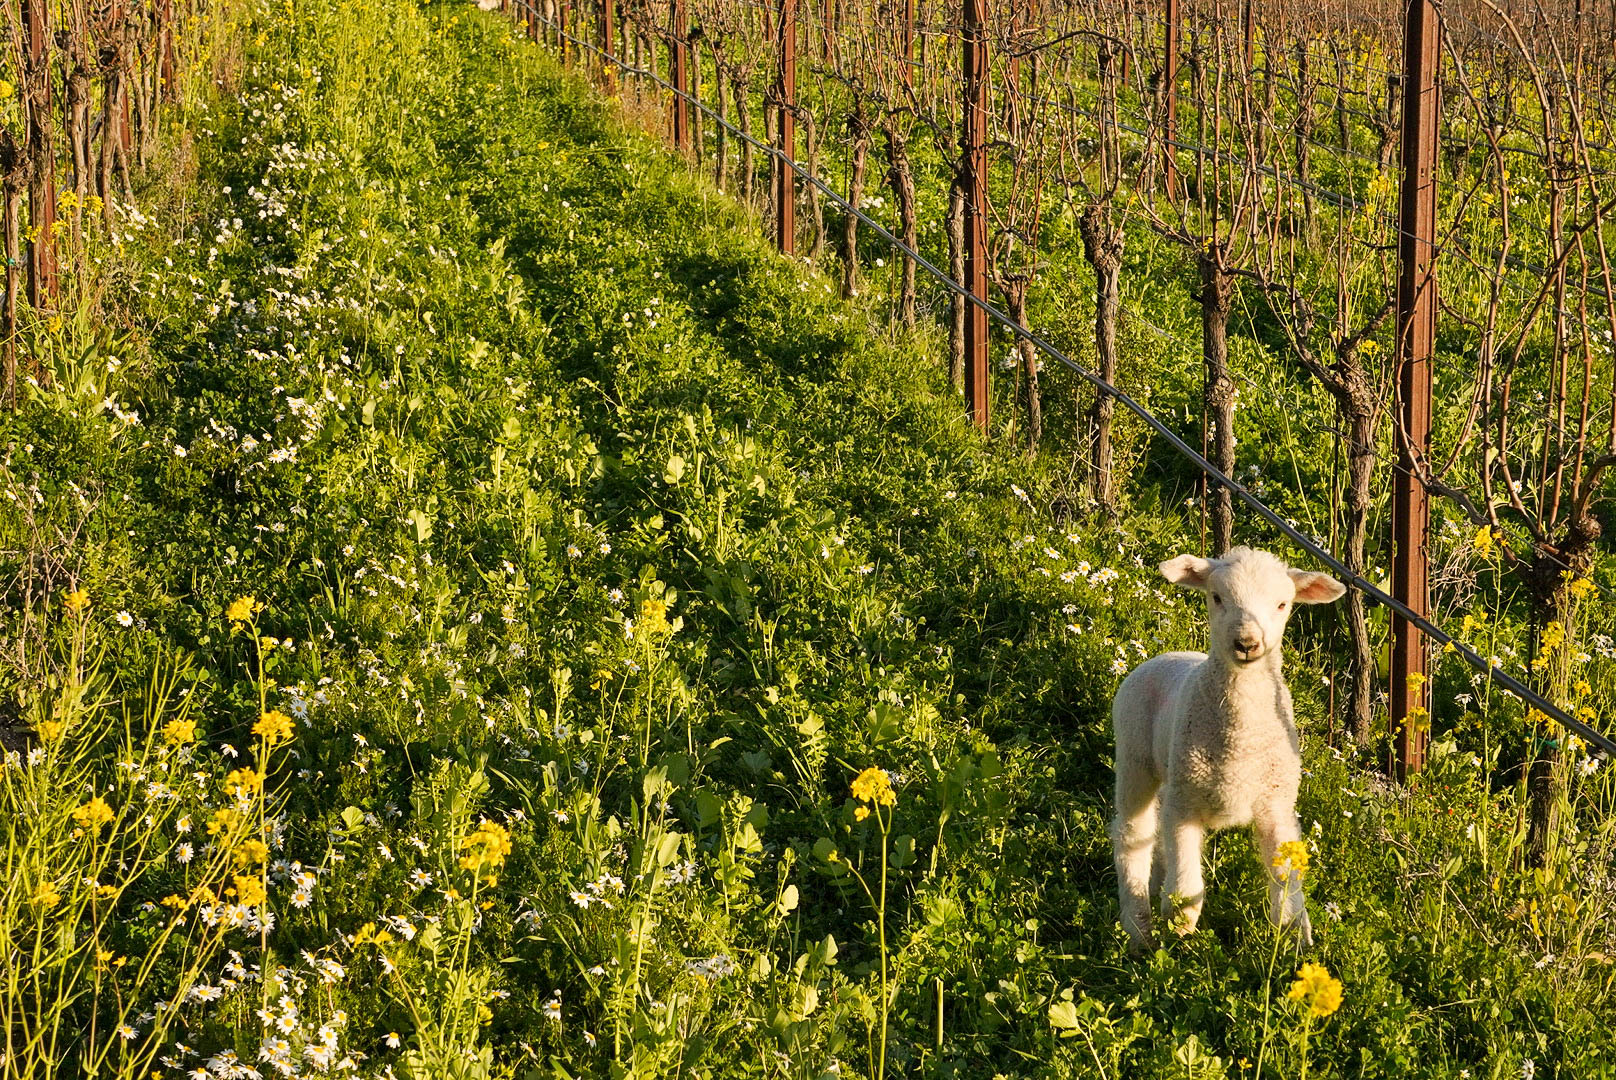 Sheep in vineyard